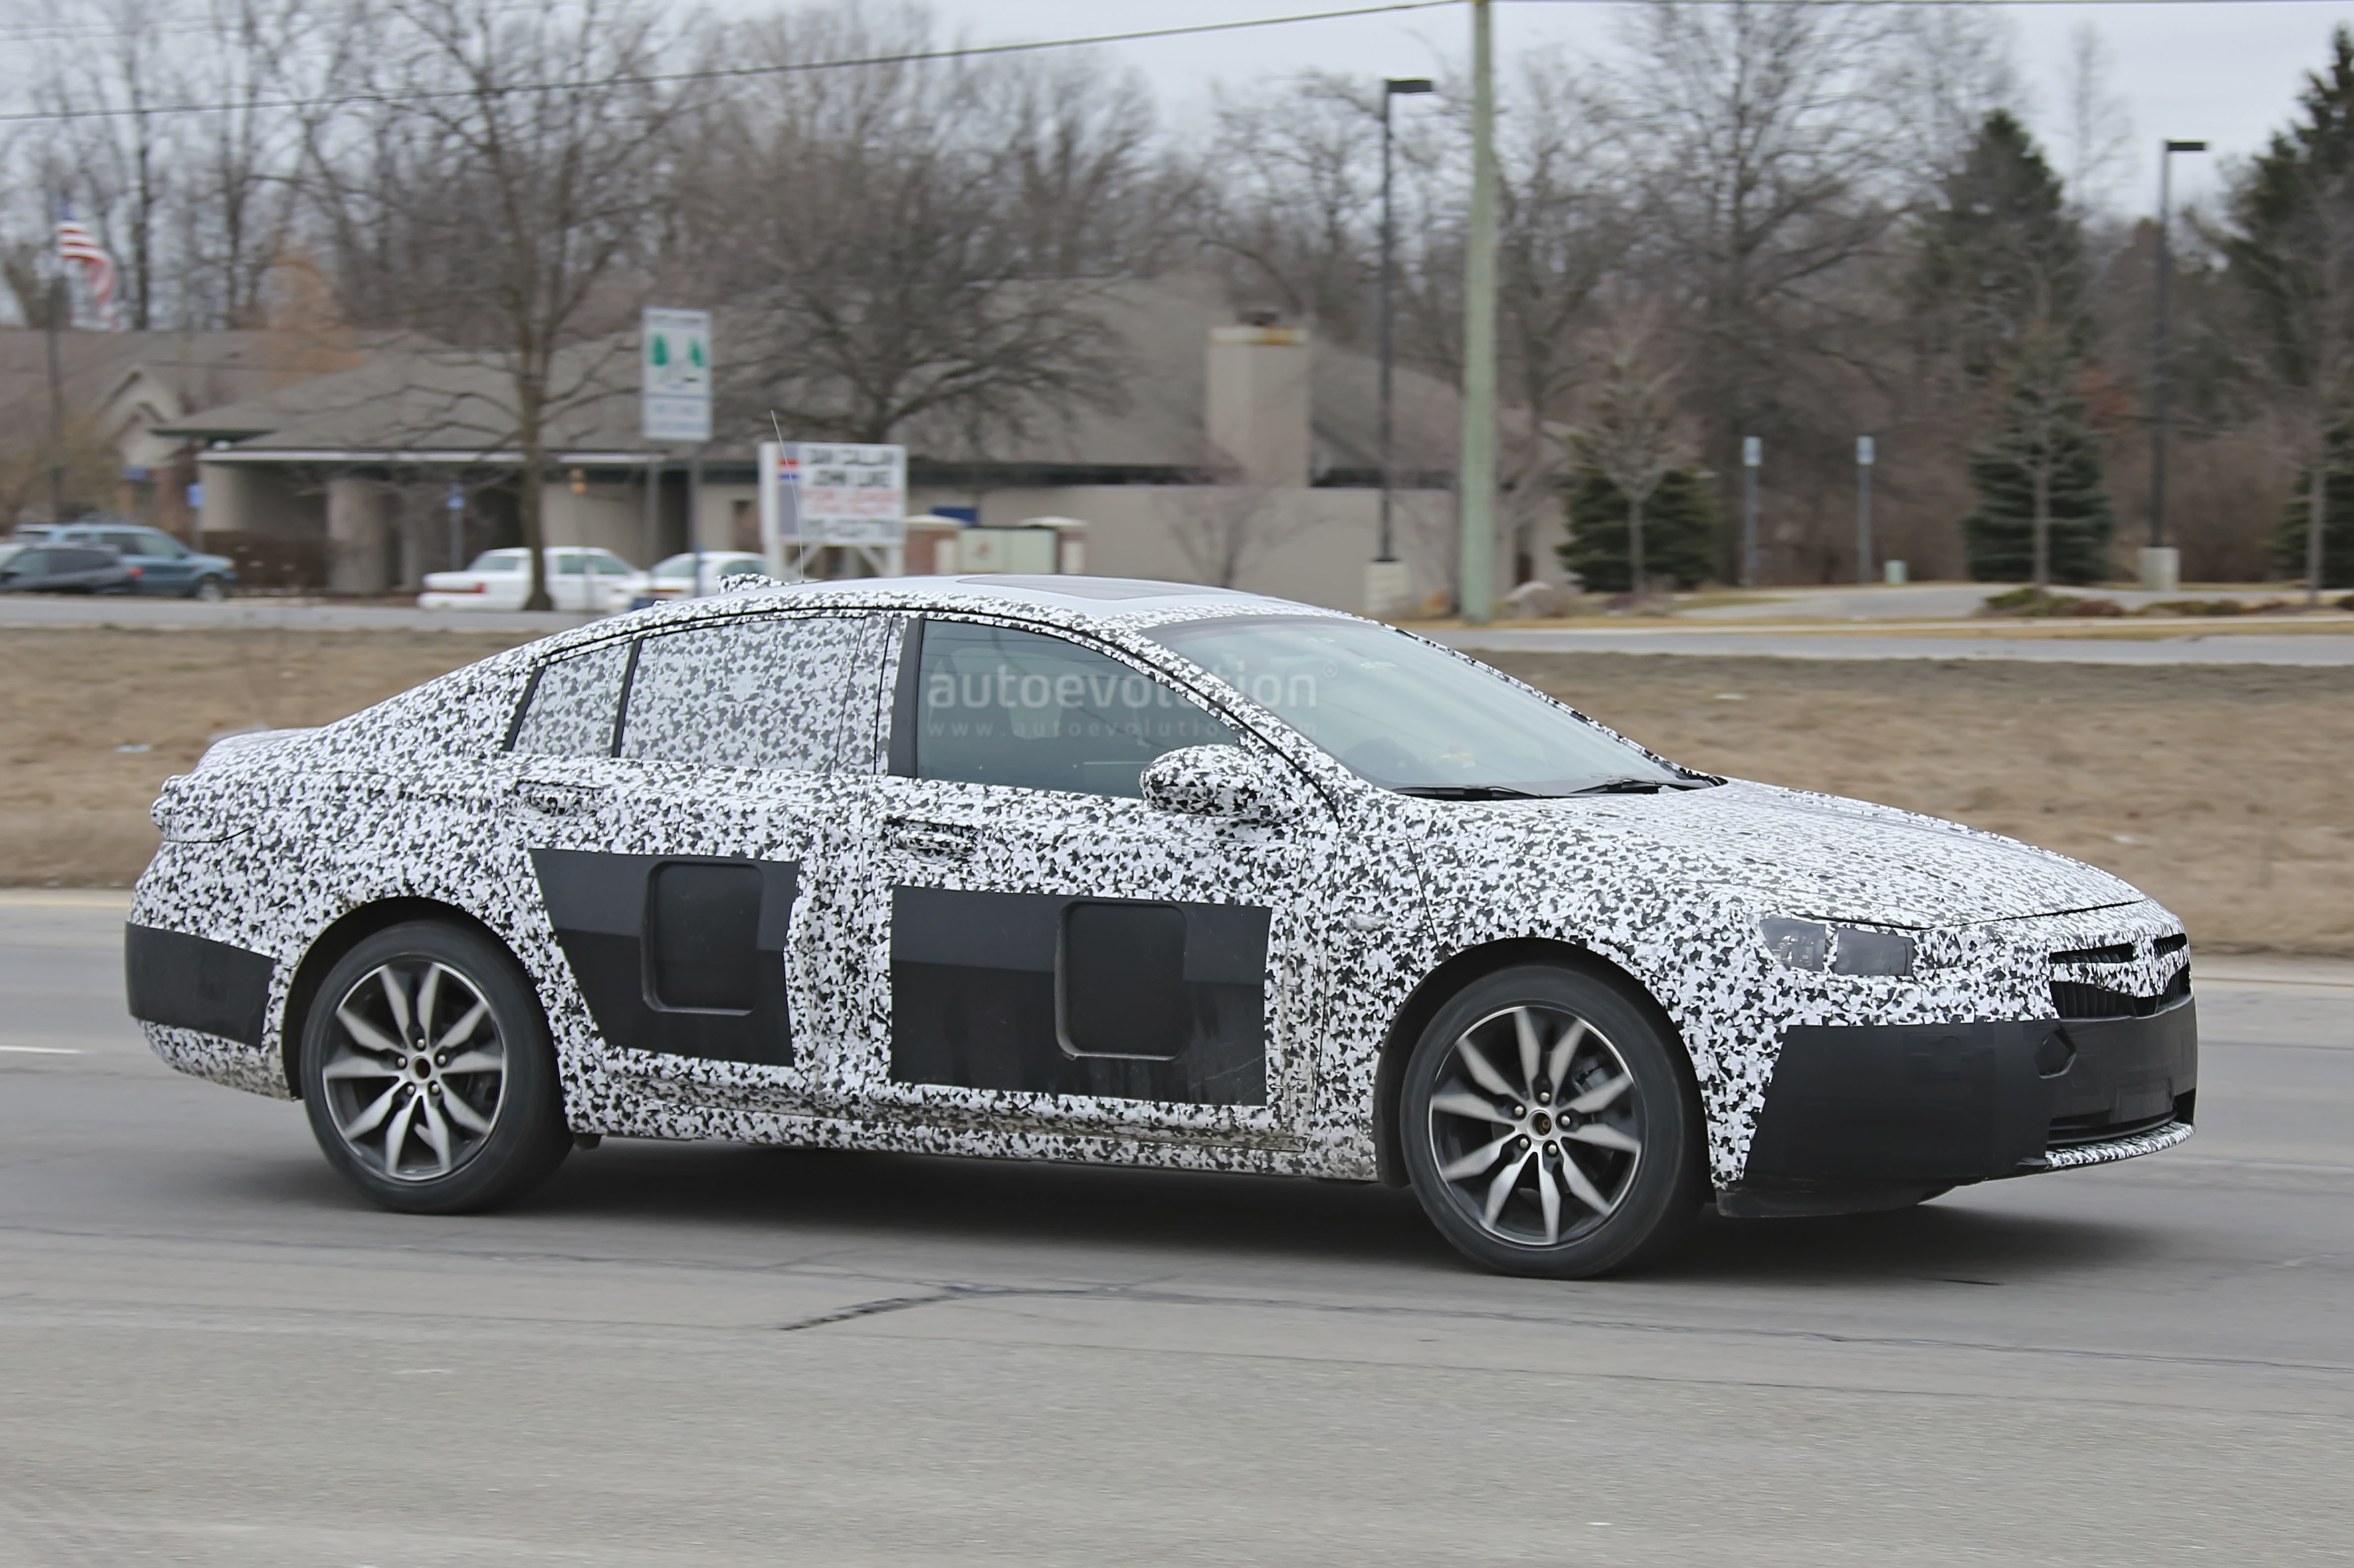 Creative 2017 Opel Insignia Spied Sans Camouflage Looks All Grown Up